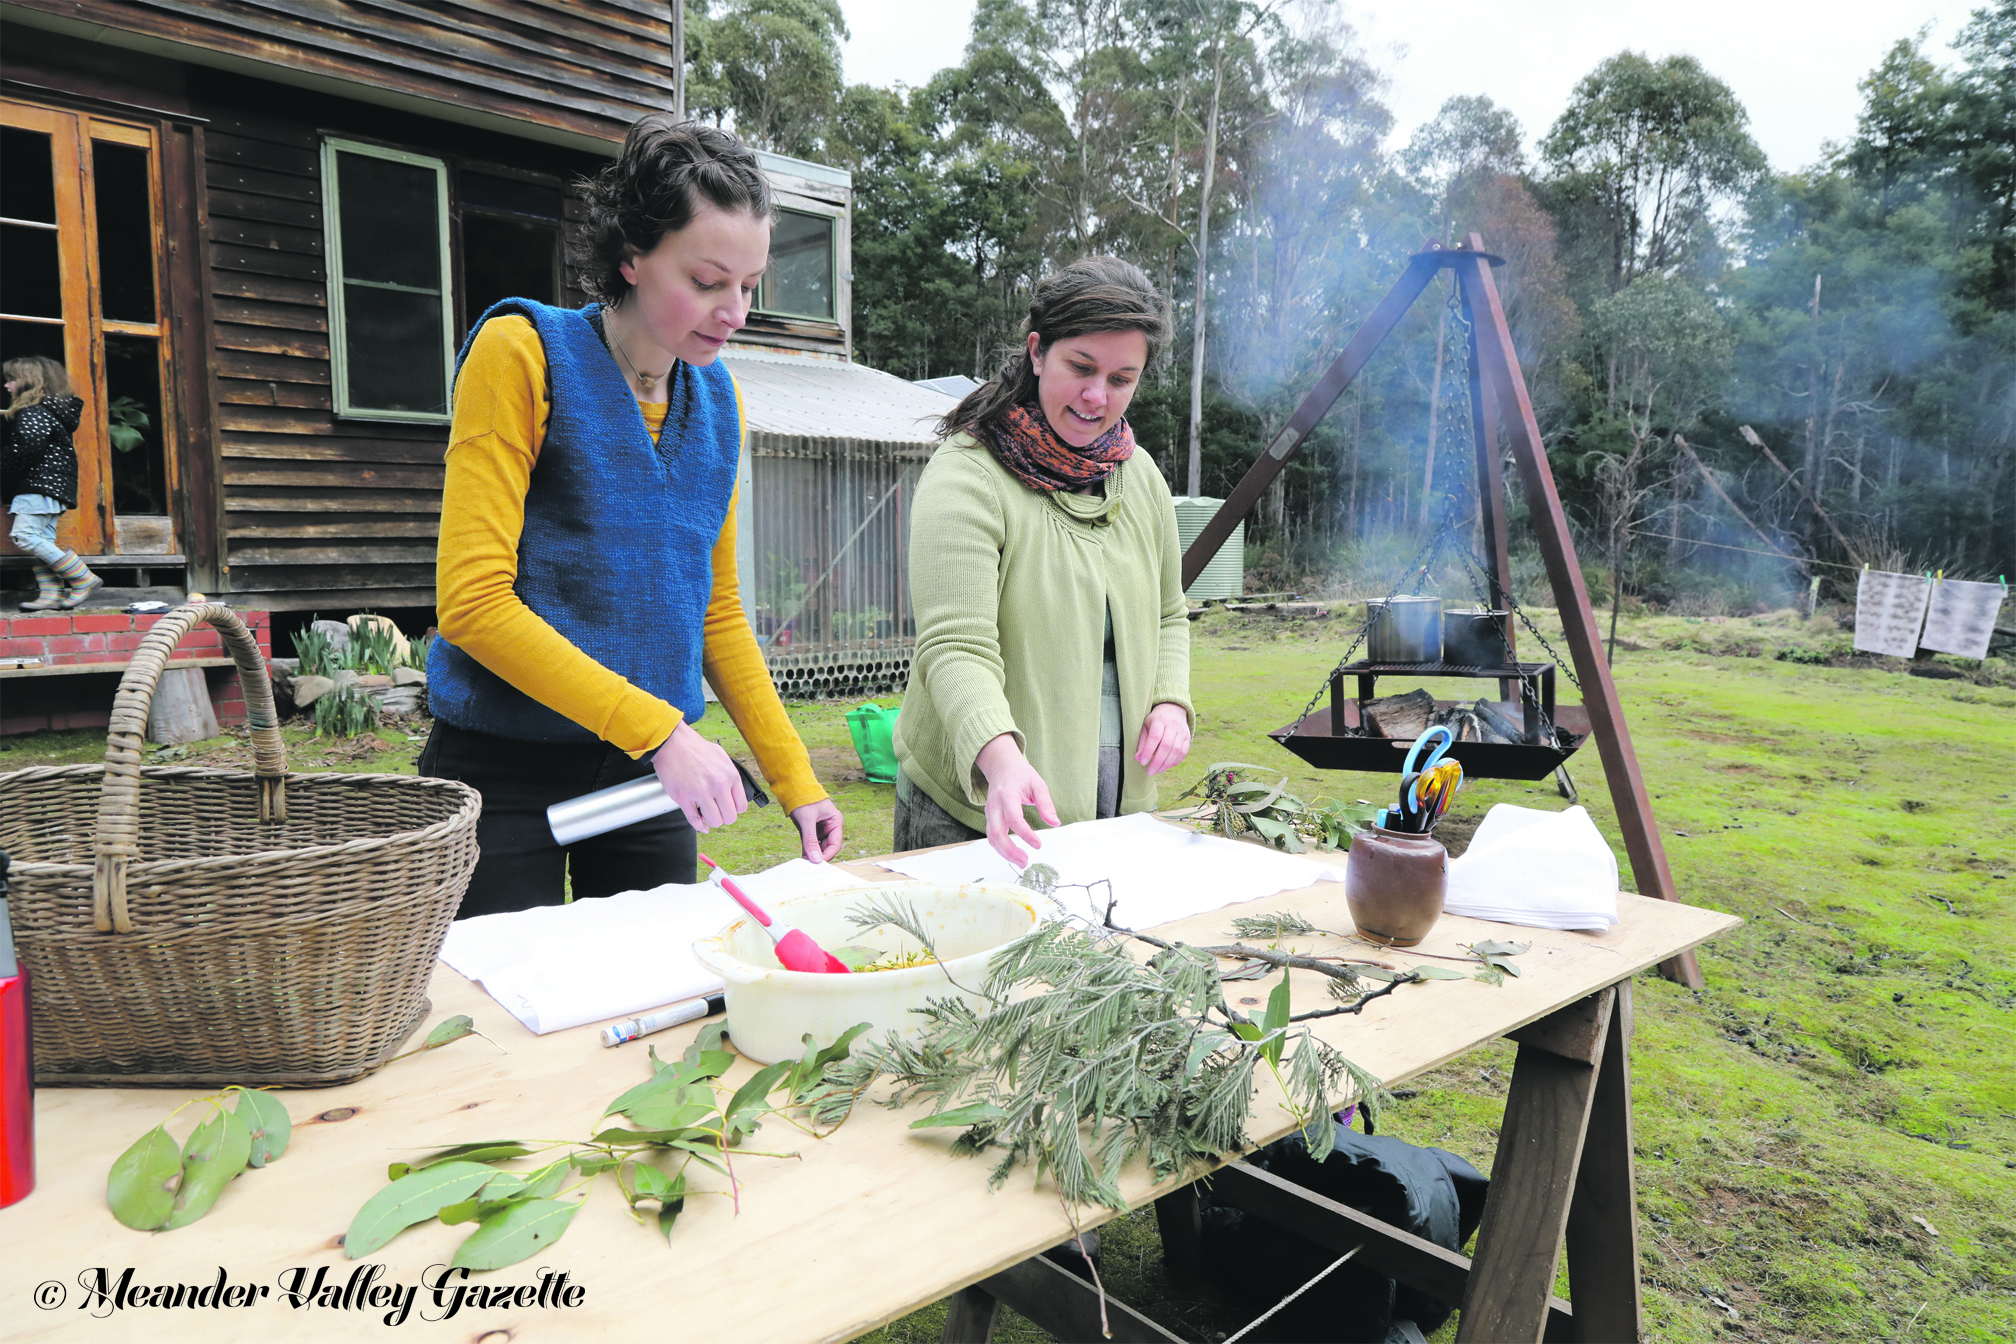 Photo by Mike Moores  Jasmine Rocca of Jackey's Marsh, an instructor at the Forest Folk workshops, preparing plants and fabric for dyeing with Bonnie McGee of Weetah.